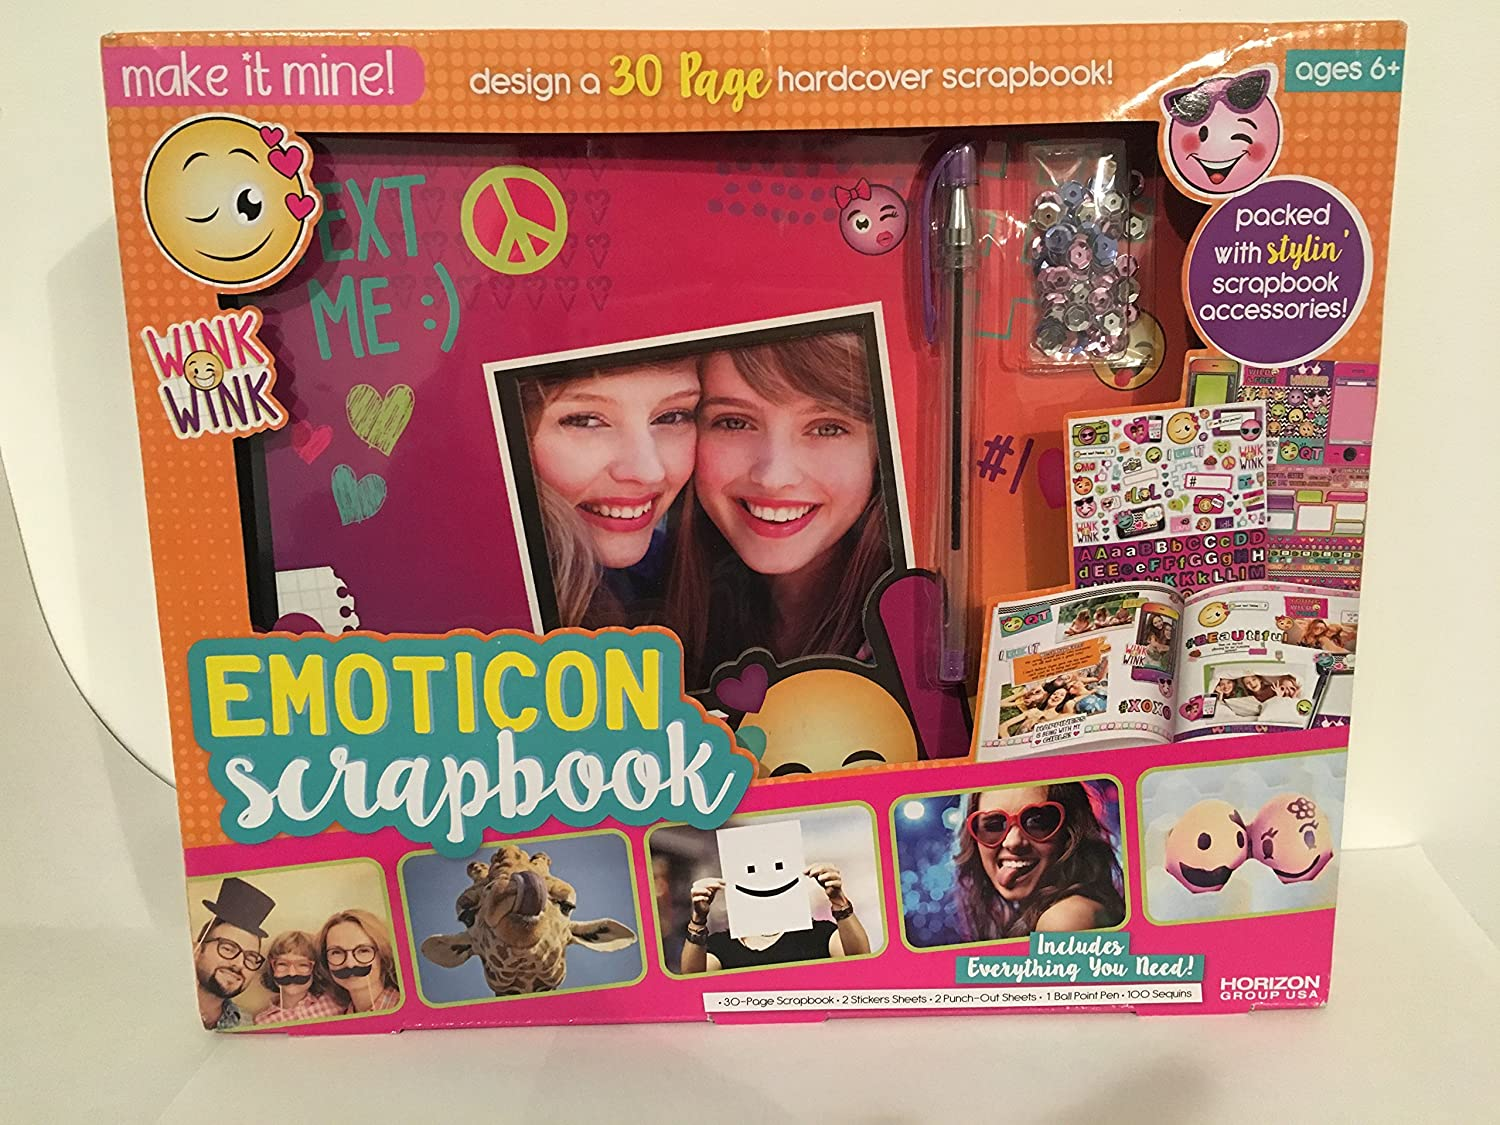 Make it mine Limited price Fixed price for sale Scrapbook Emoticon